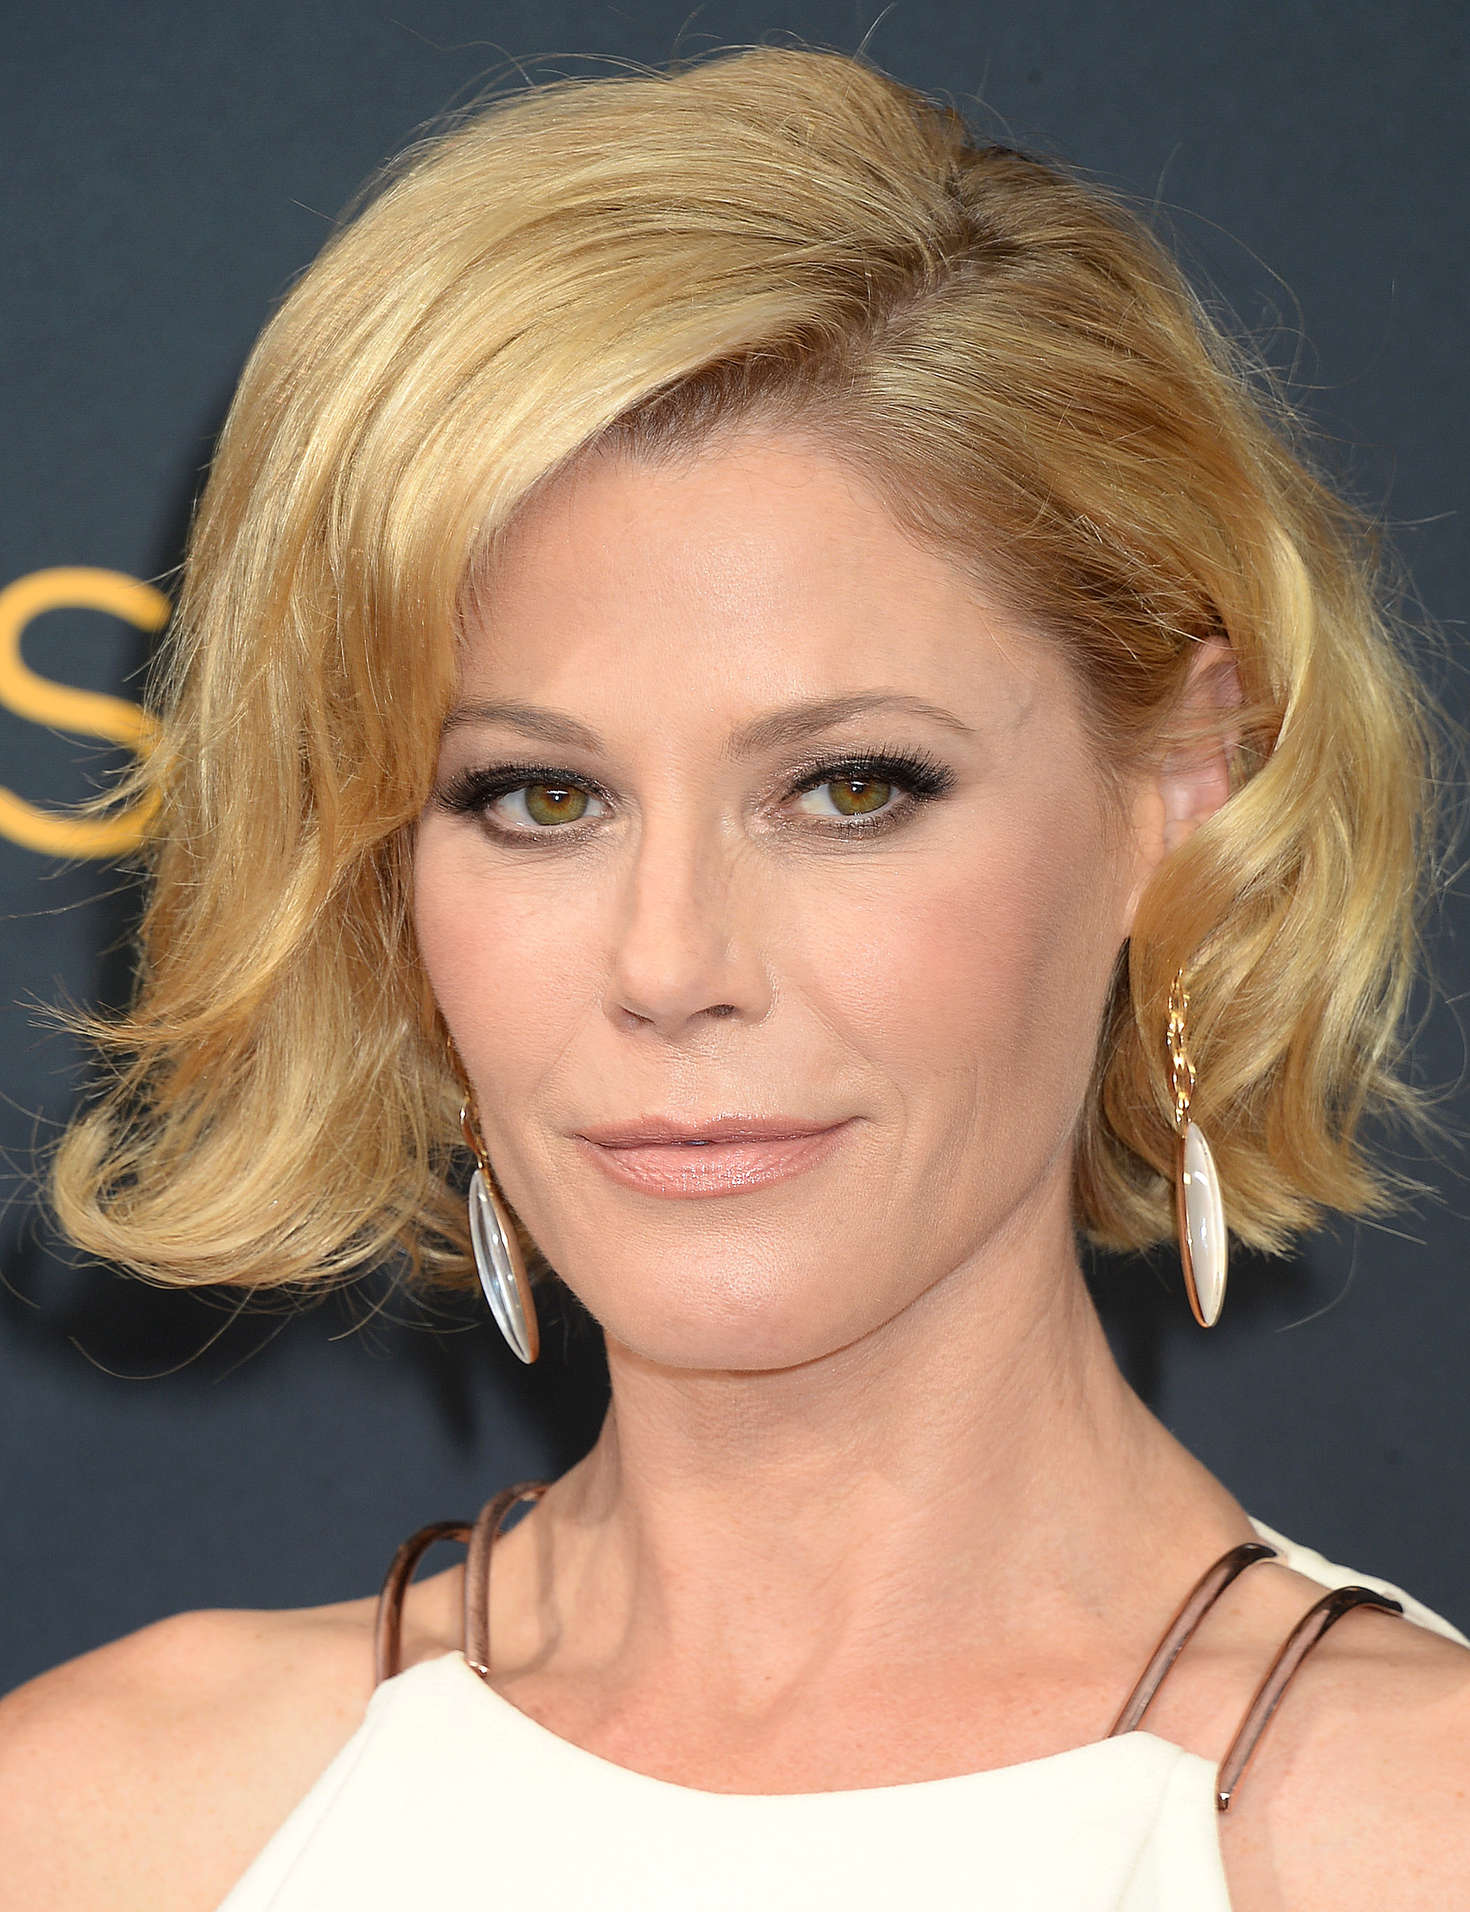 Pleasing Julie Bowen 2016 Emmy Awards In Los Angeles Hairstyles For Women Draintrainus